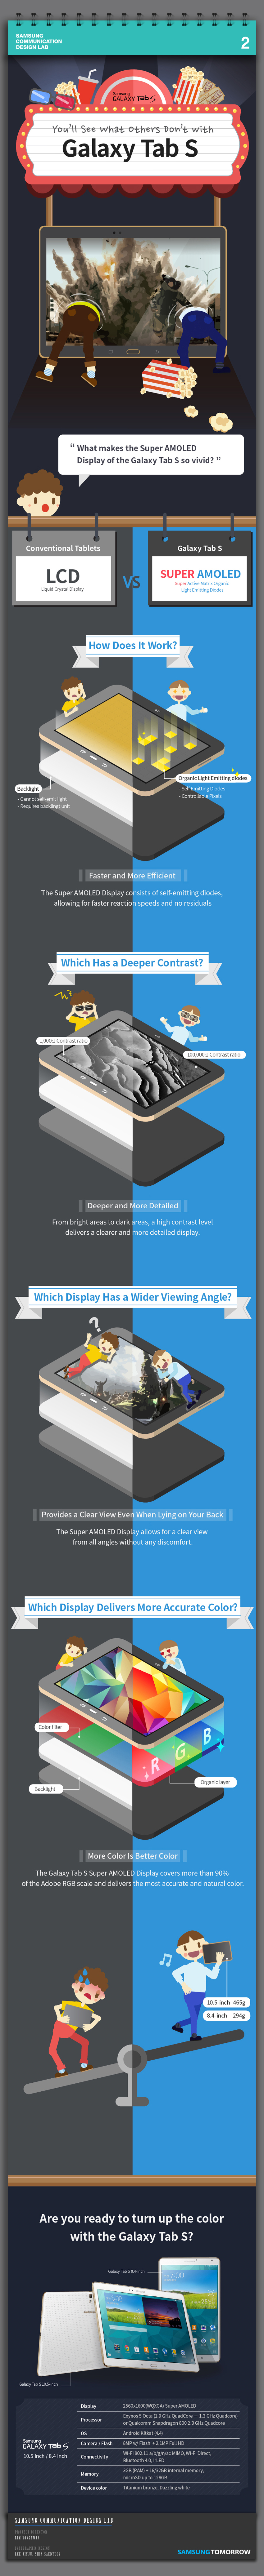 [Infographic] You'll See What Others Don't with Galaxy Tab S